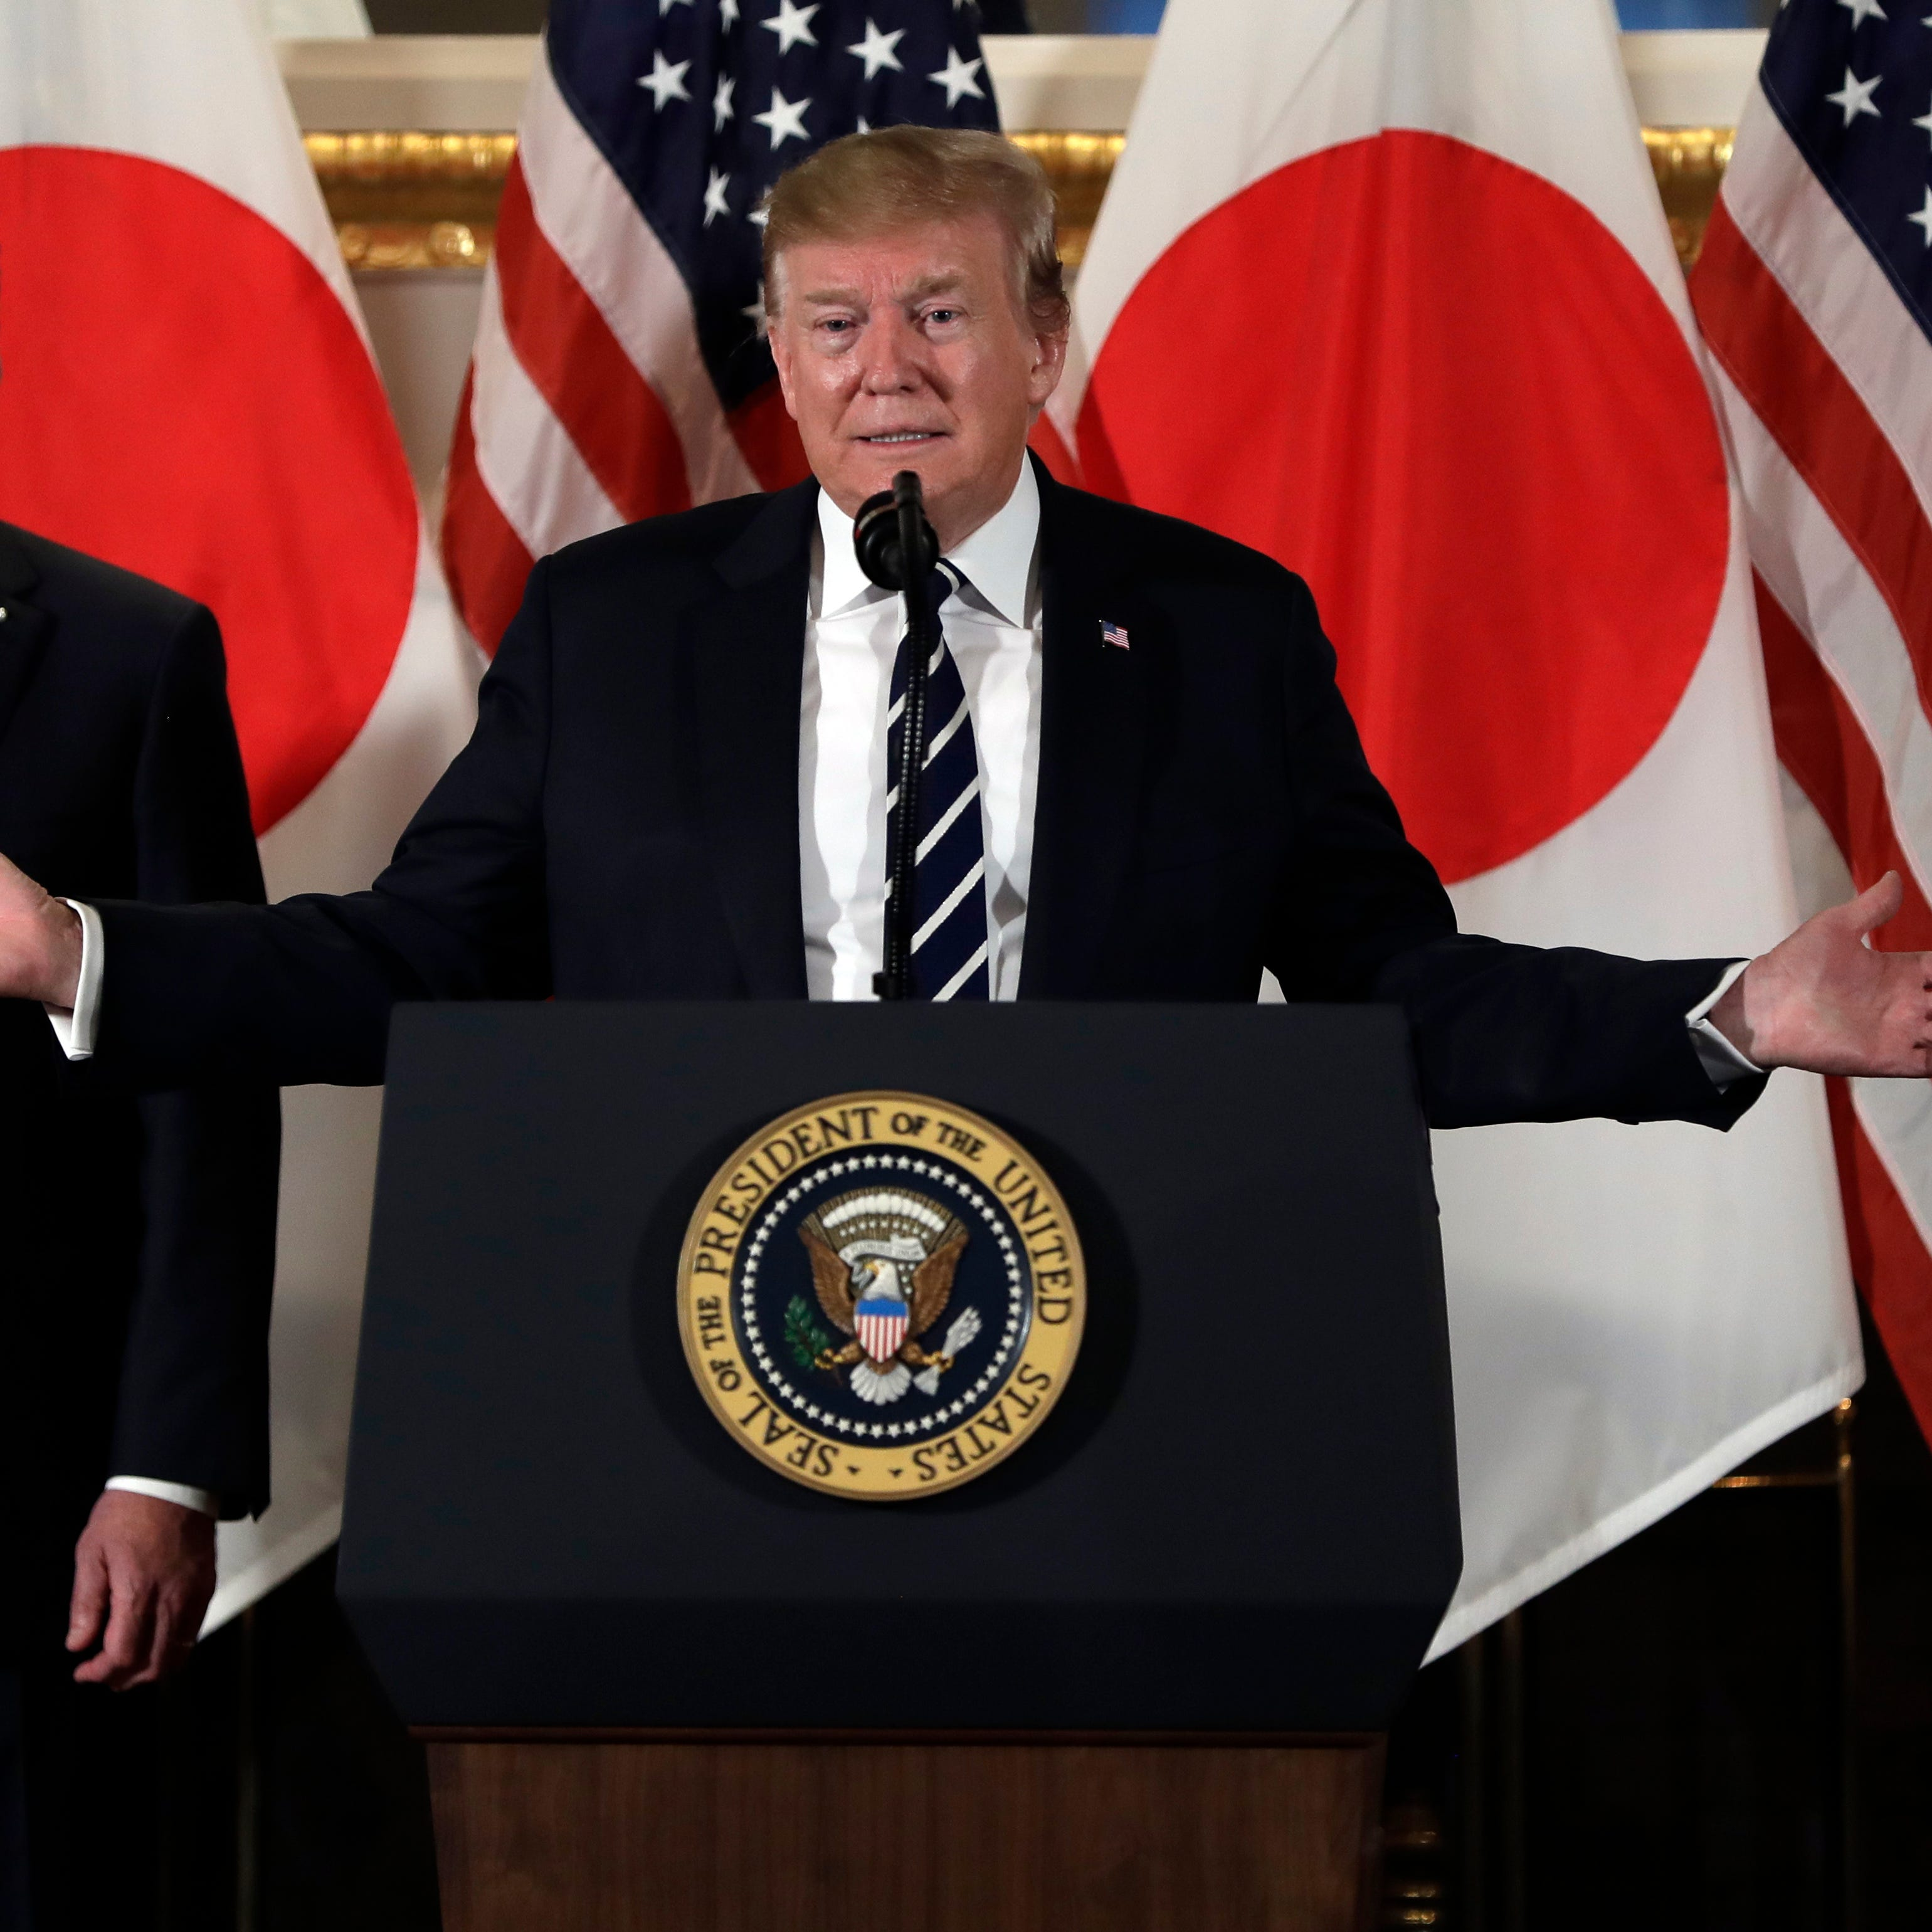 Trump opens visit by needling Japan over trade imbalance